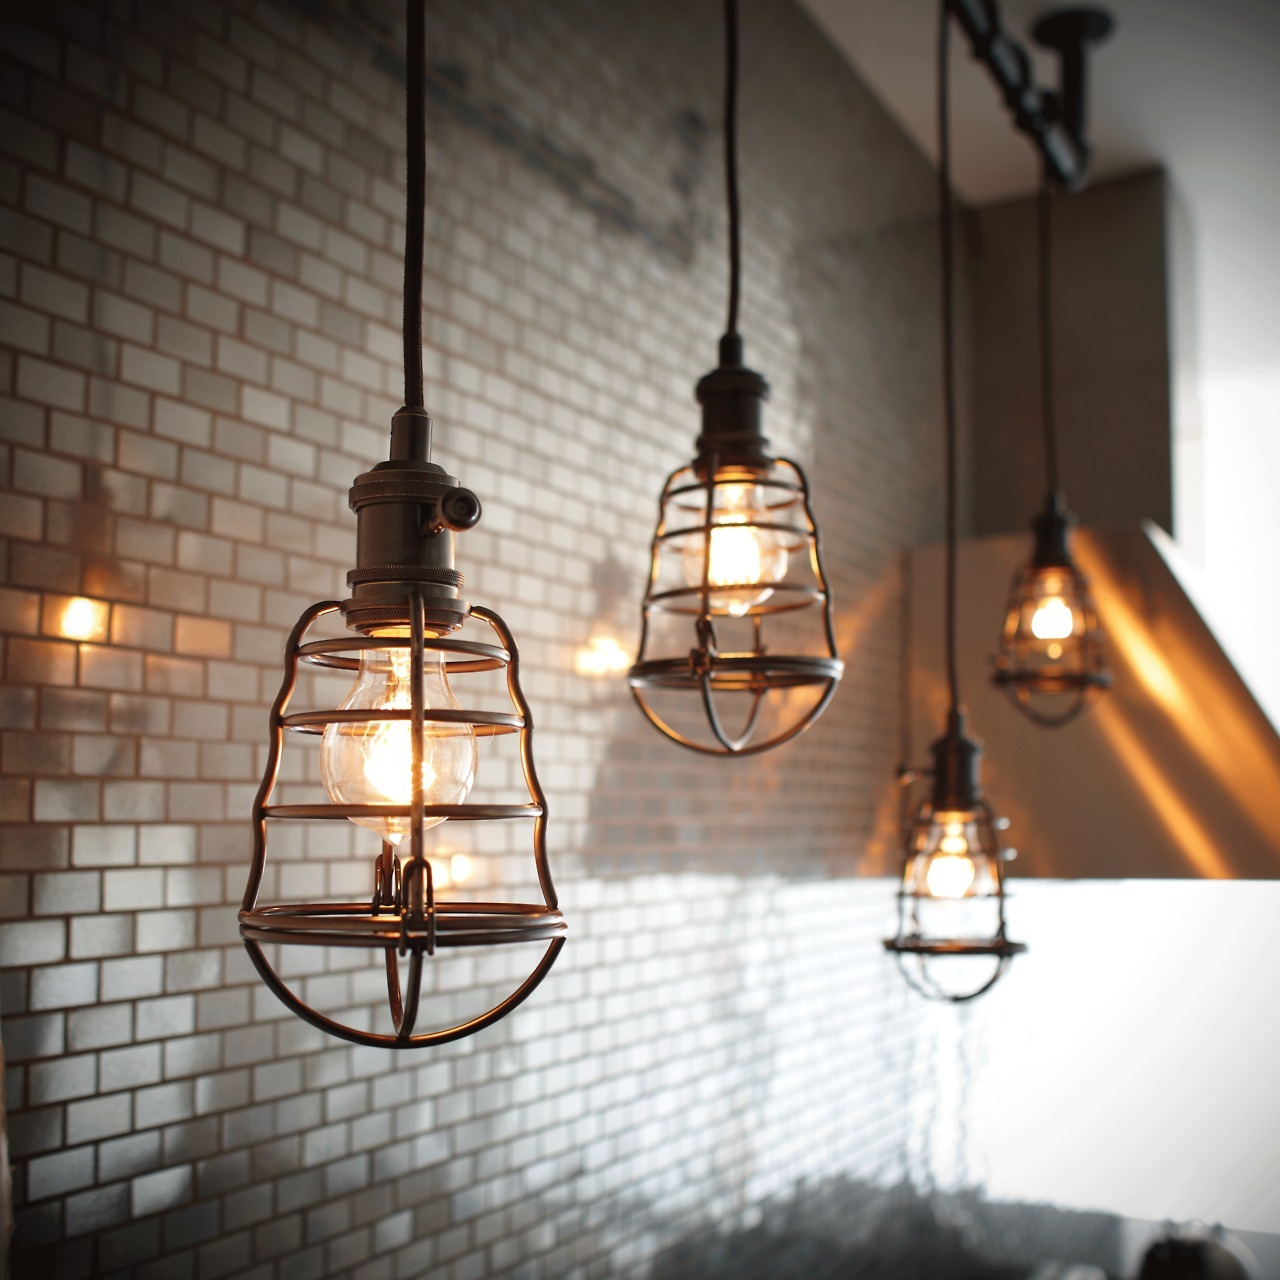 industrial kitchen lights wall mounted faucet diy interior design interiors decor